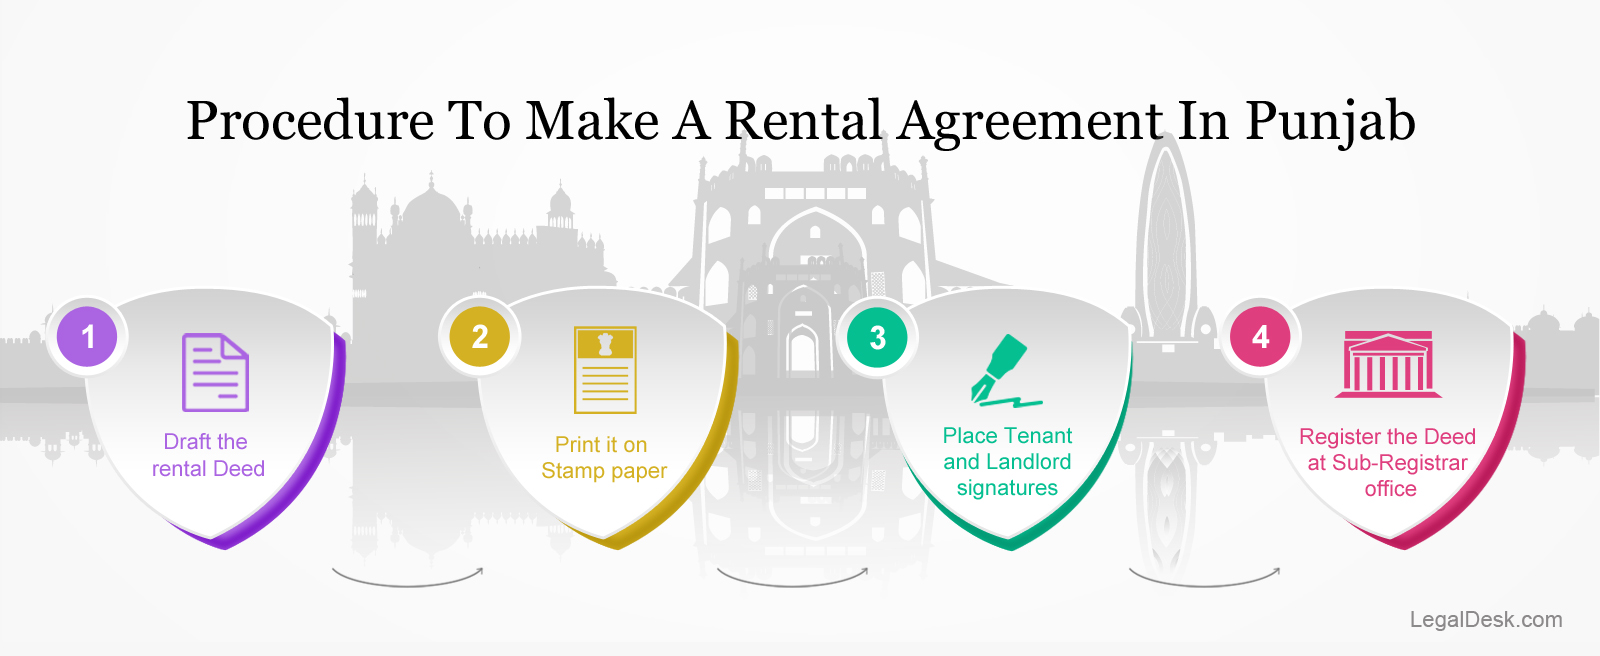 How To Create A Rental Agreement In Punjab